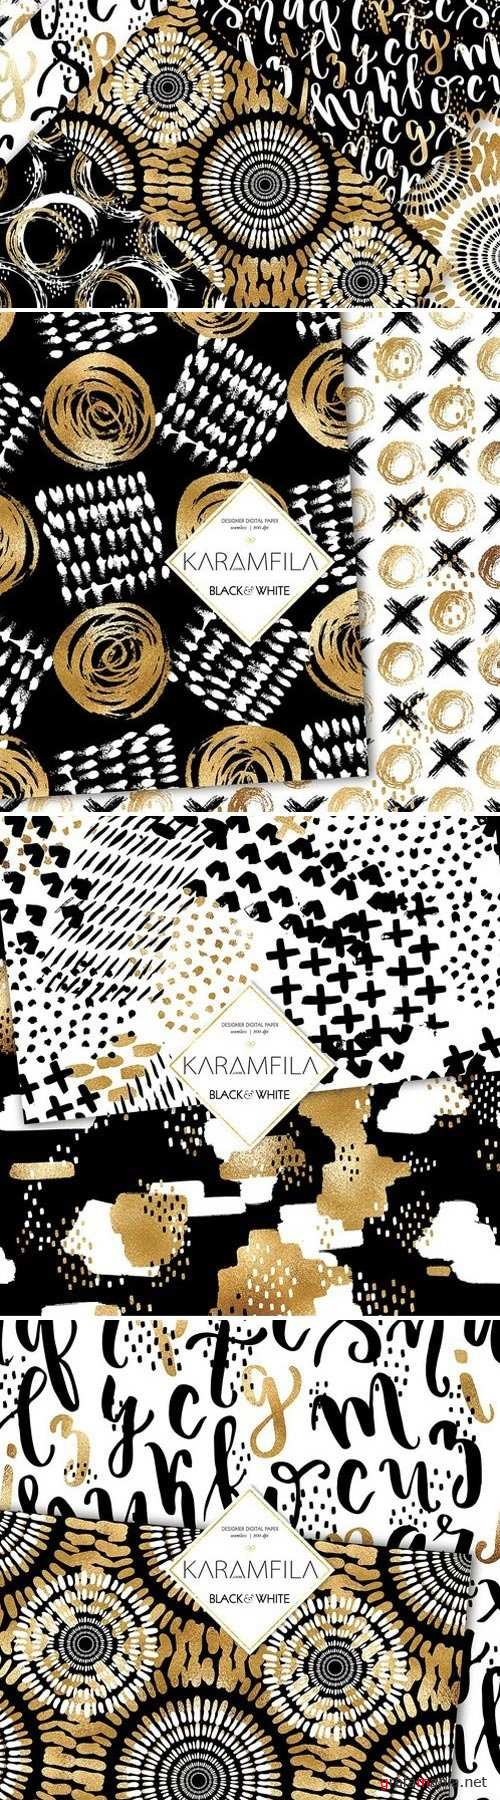 Black and White Doodles Patterns 2153343